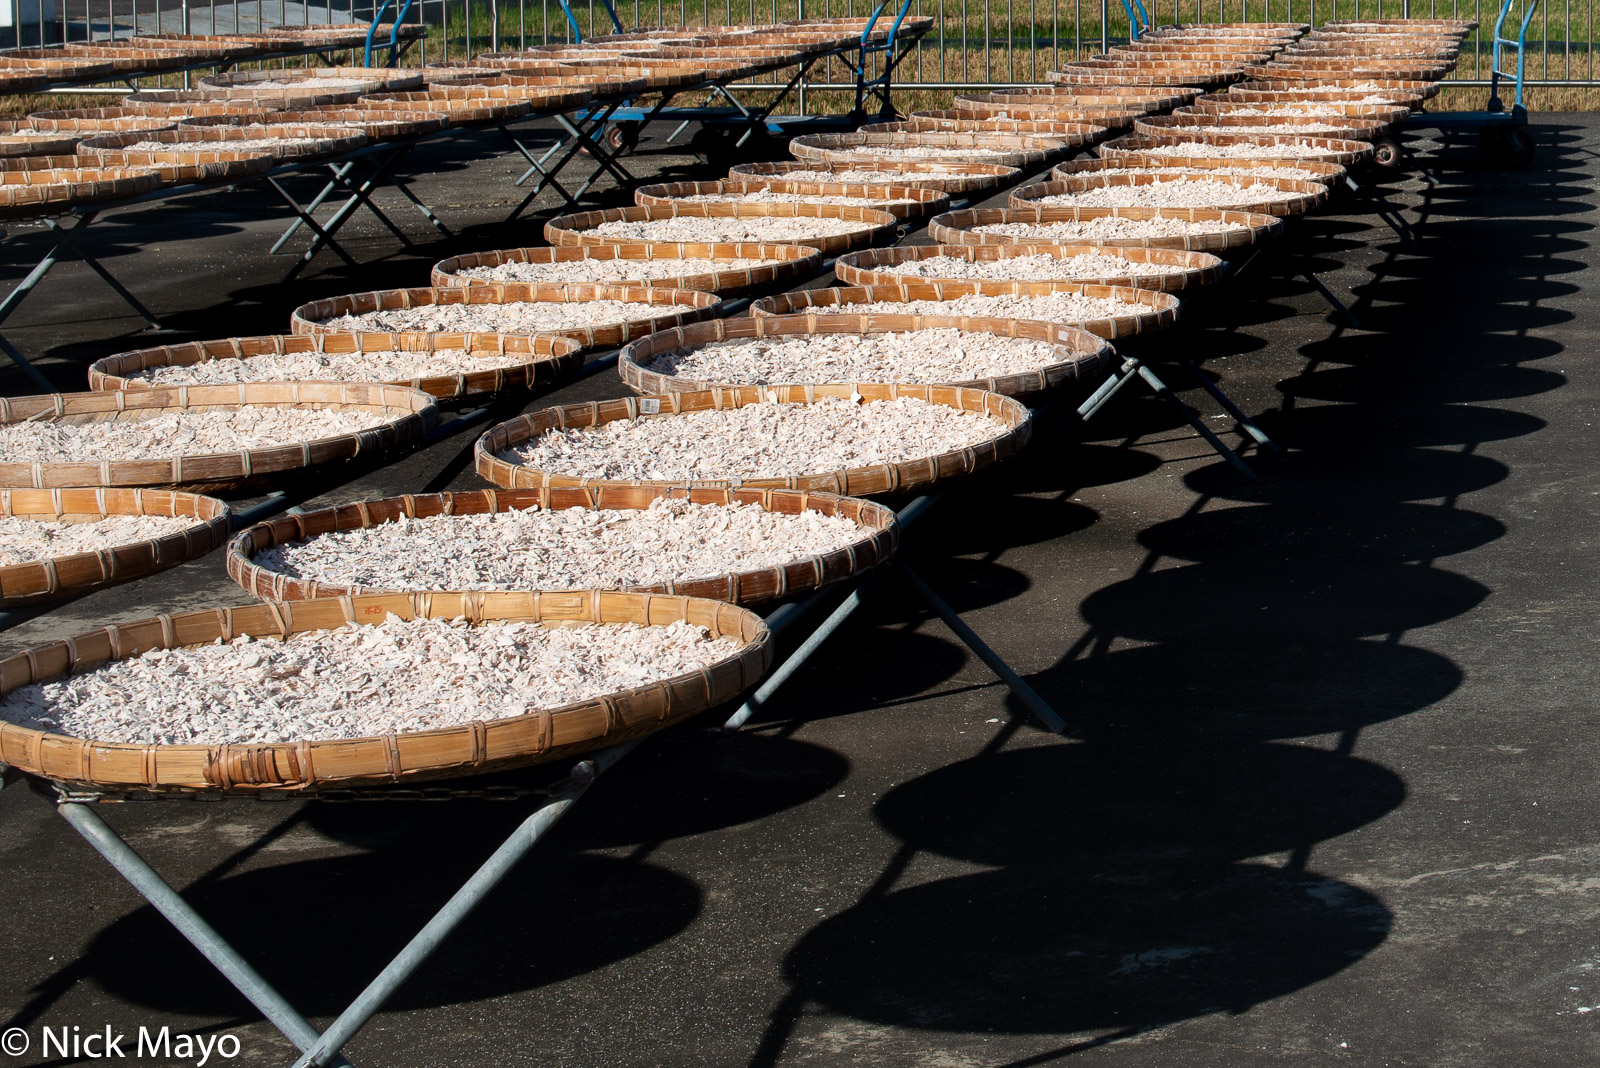 Lotus root drying in trays at Shanzihjiao in Tainan County.